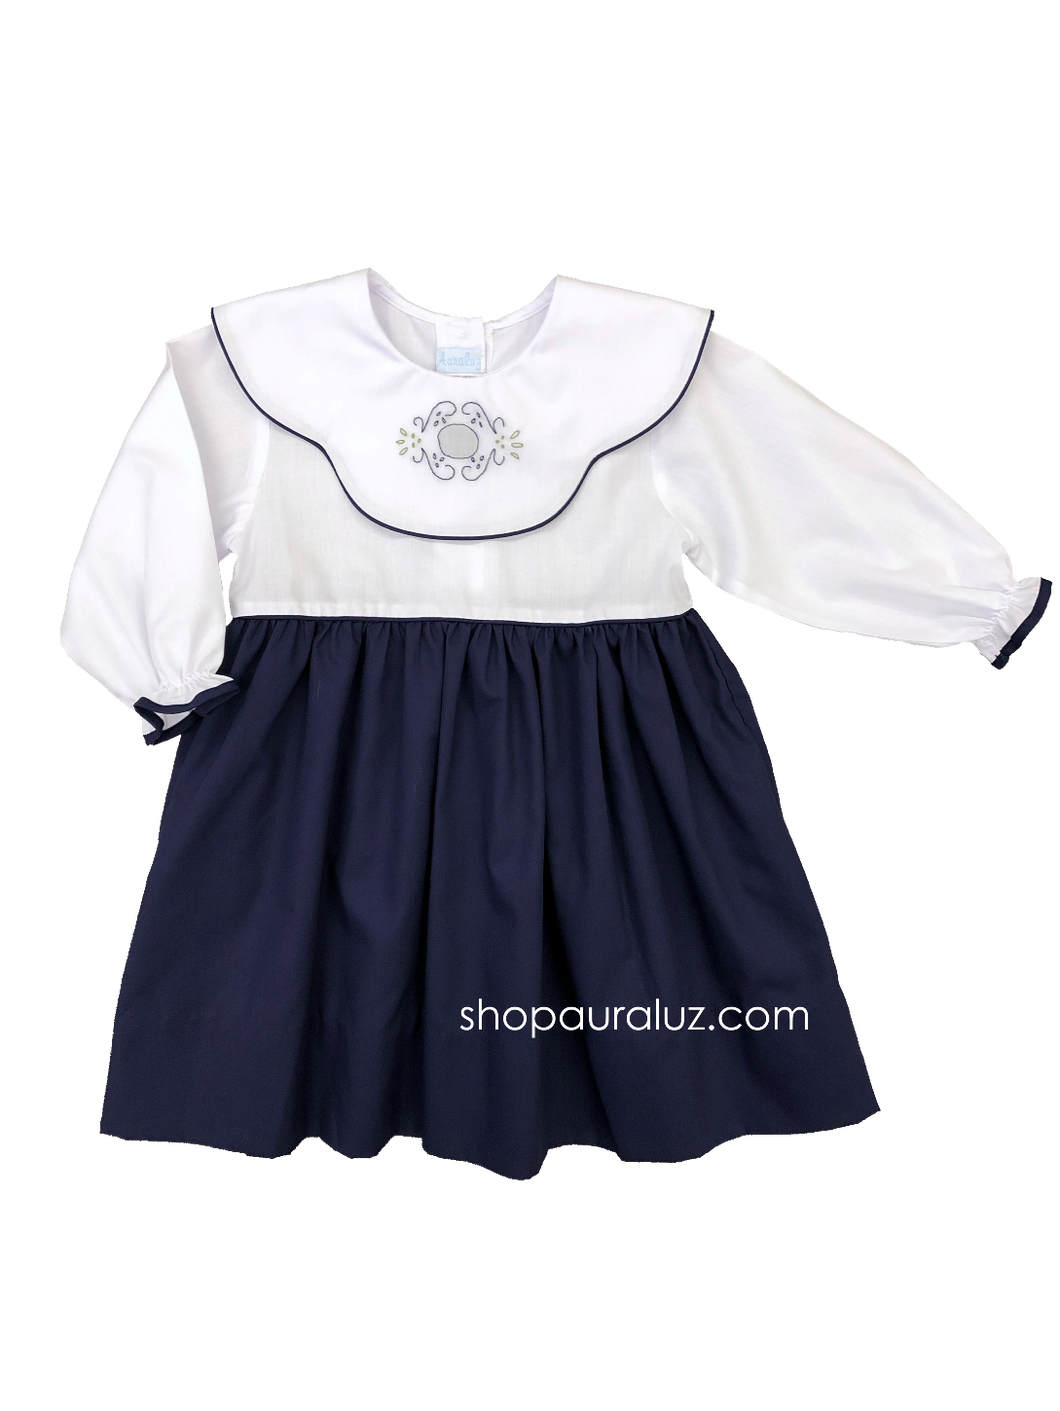 Auraluz Dress, l/s...Navy w/binding, white scalloped collar and embroidered floral